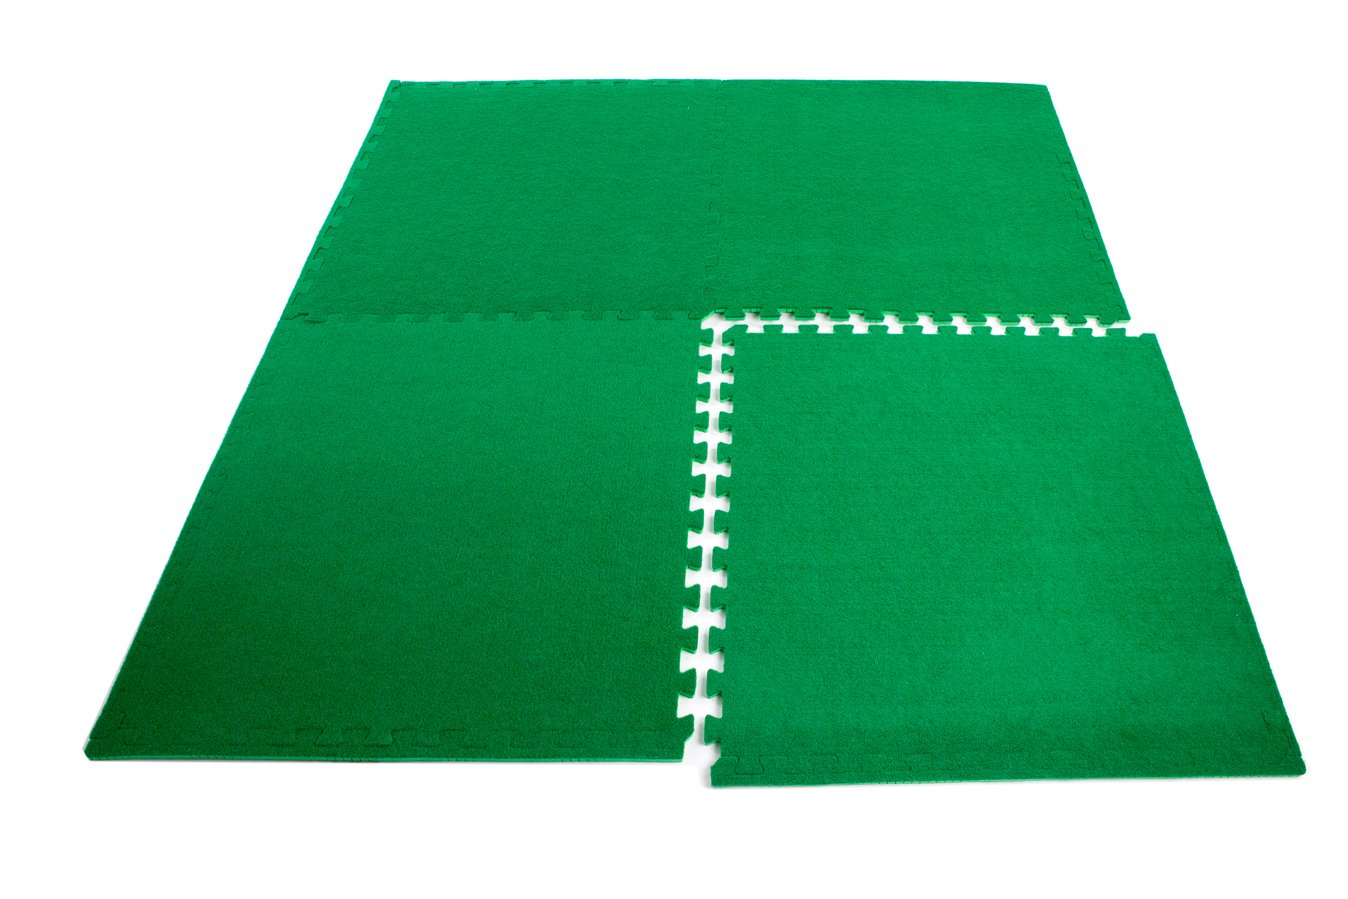 Astro Turf x 4 Mats Interlocking by Easimat 386